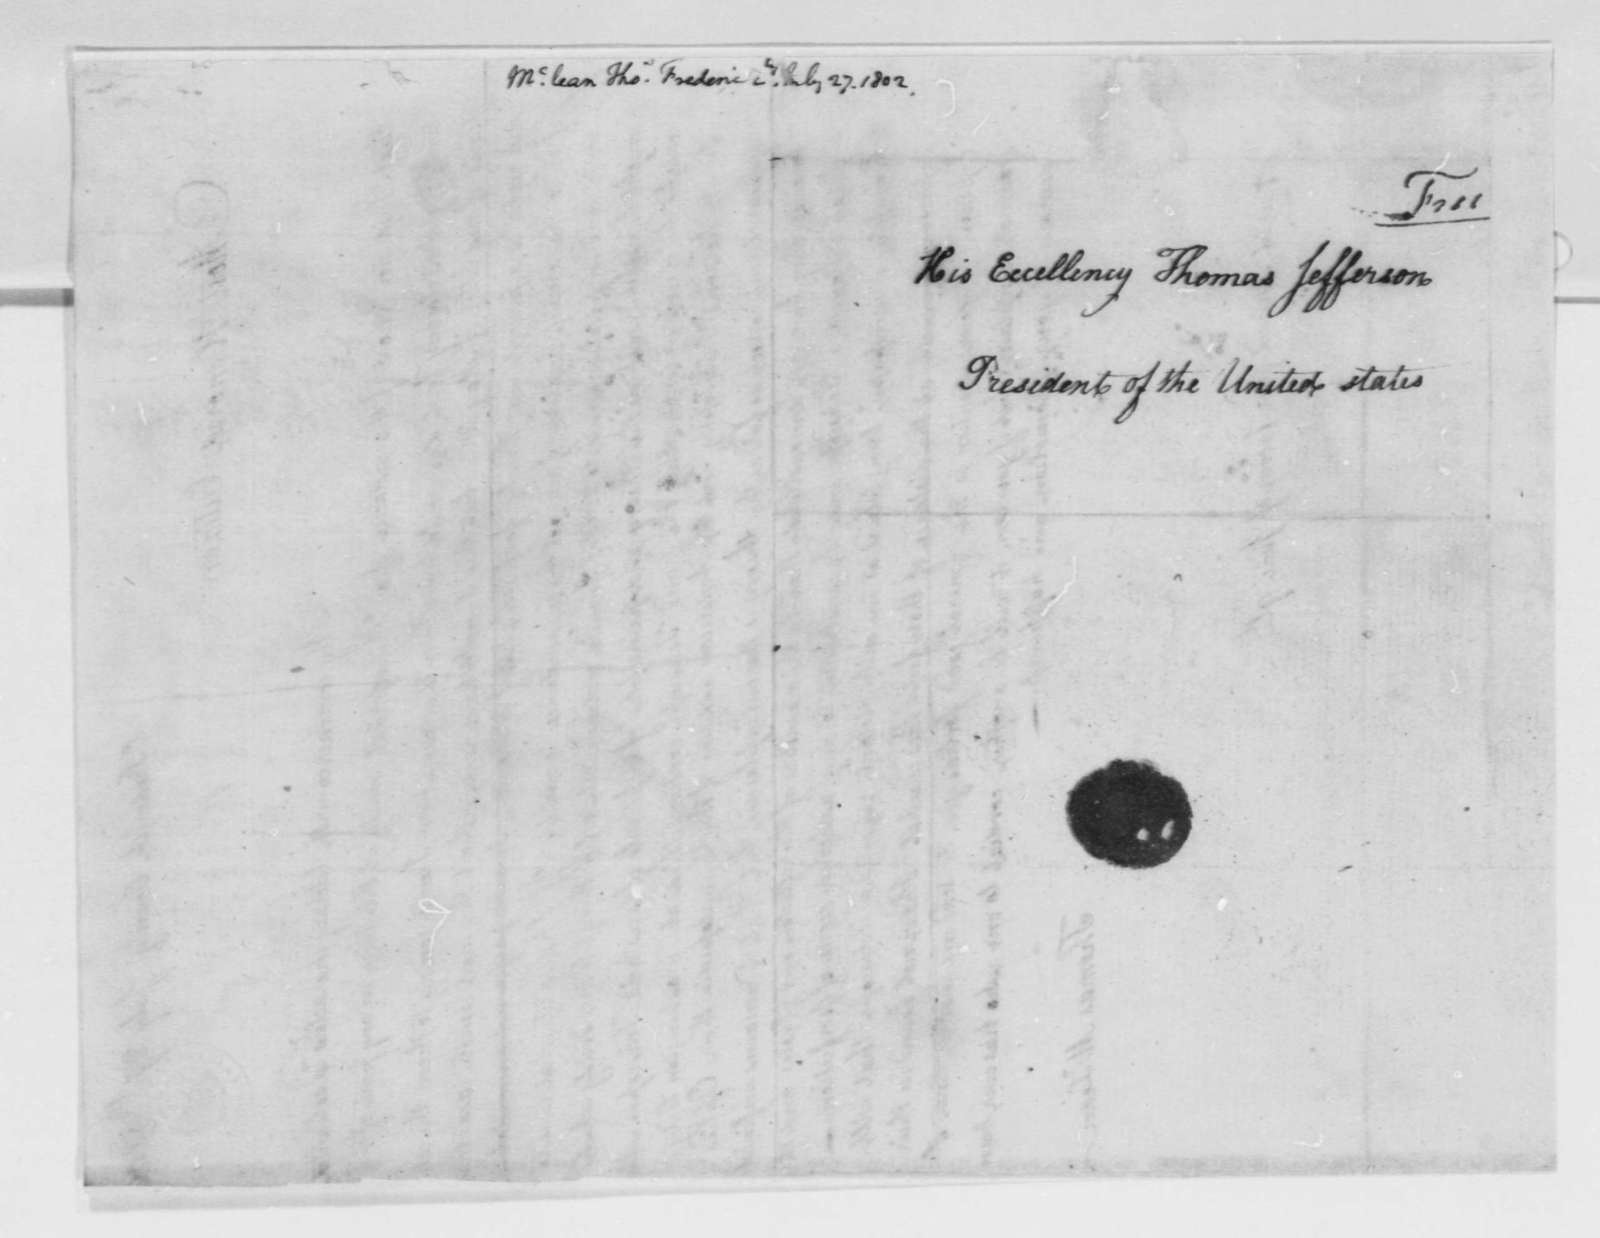 Thomas McLean to Thomas Jefferson, July 27, 1802